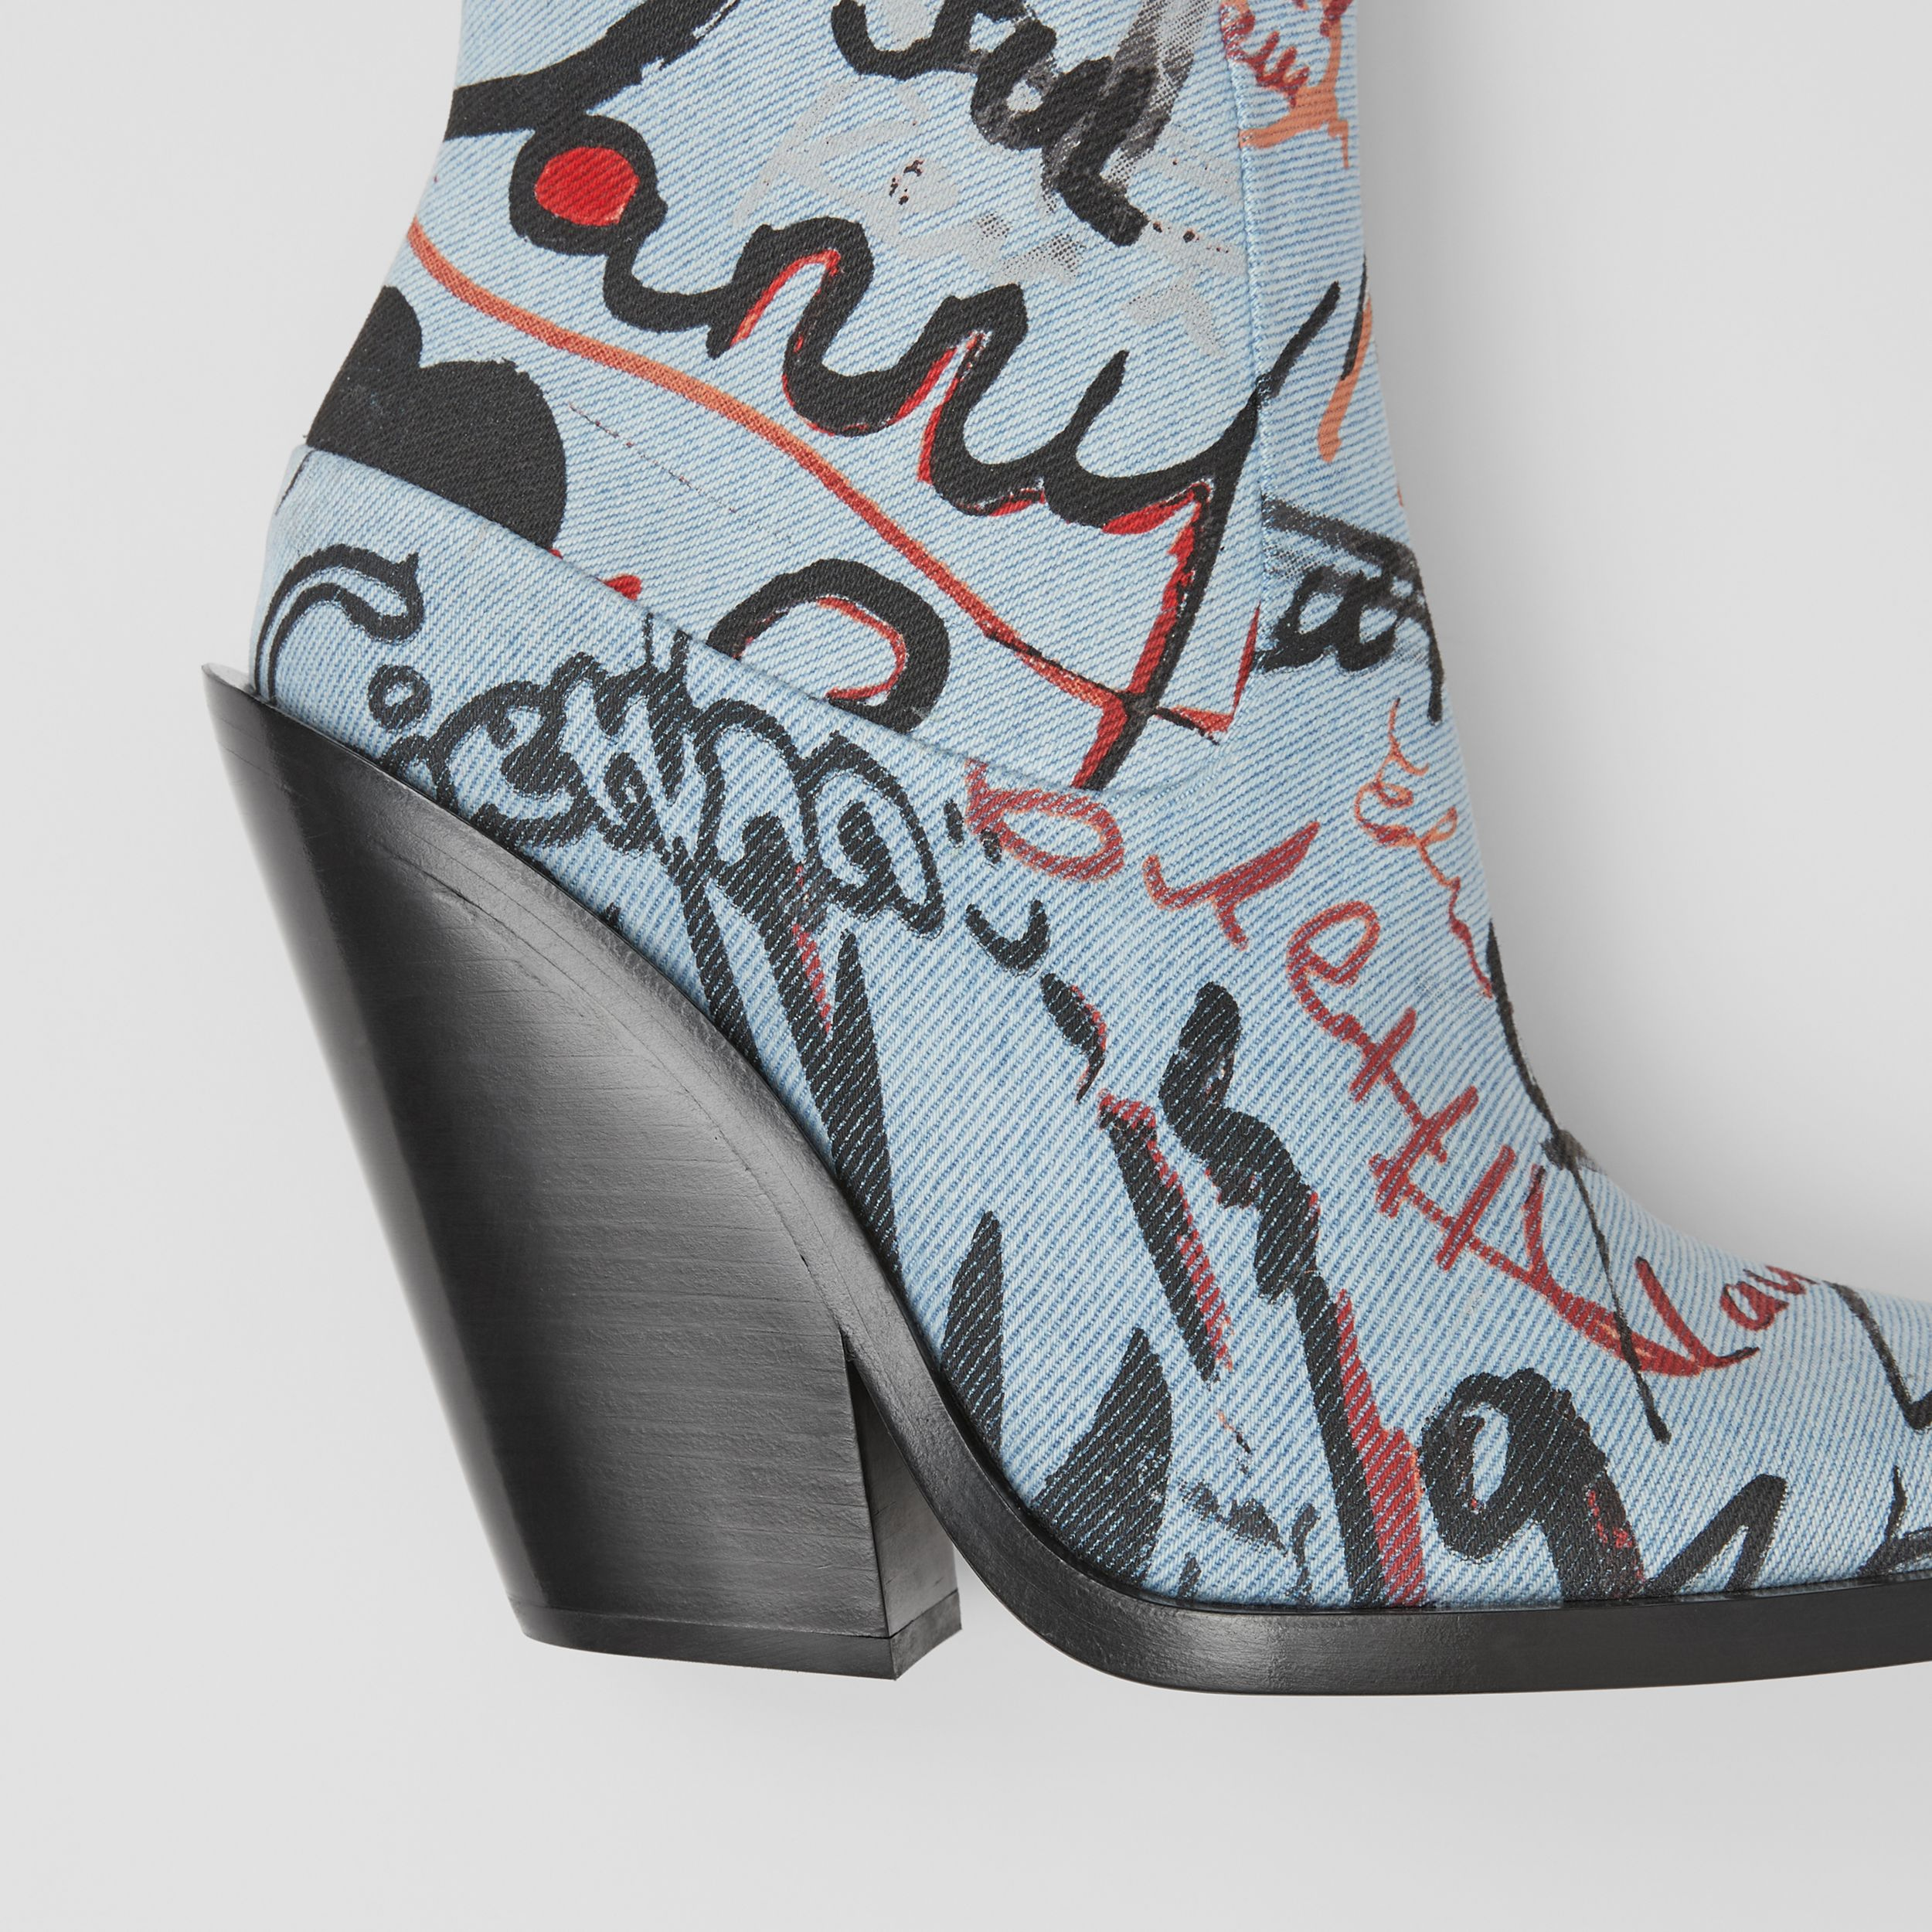 Graffiti Print Denim Block-heel Ankle Boots in Multicolour - Women | Burberry Hong Kong S.A.R. - 2